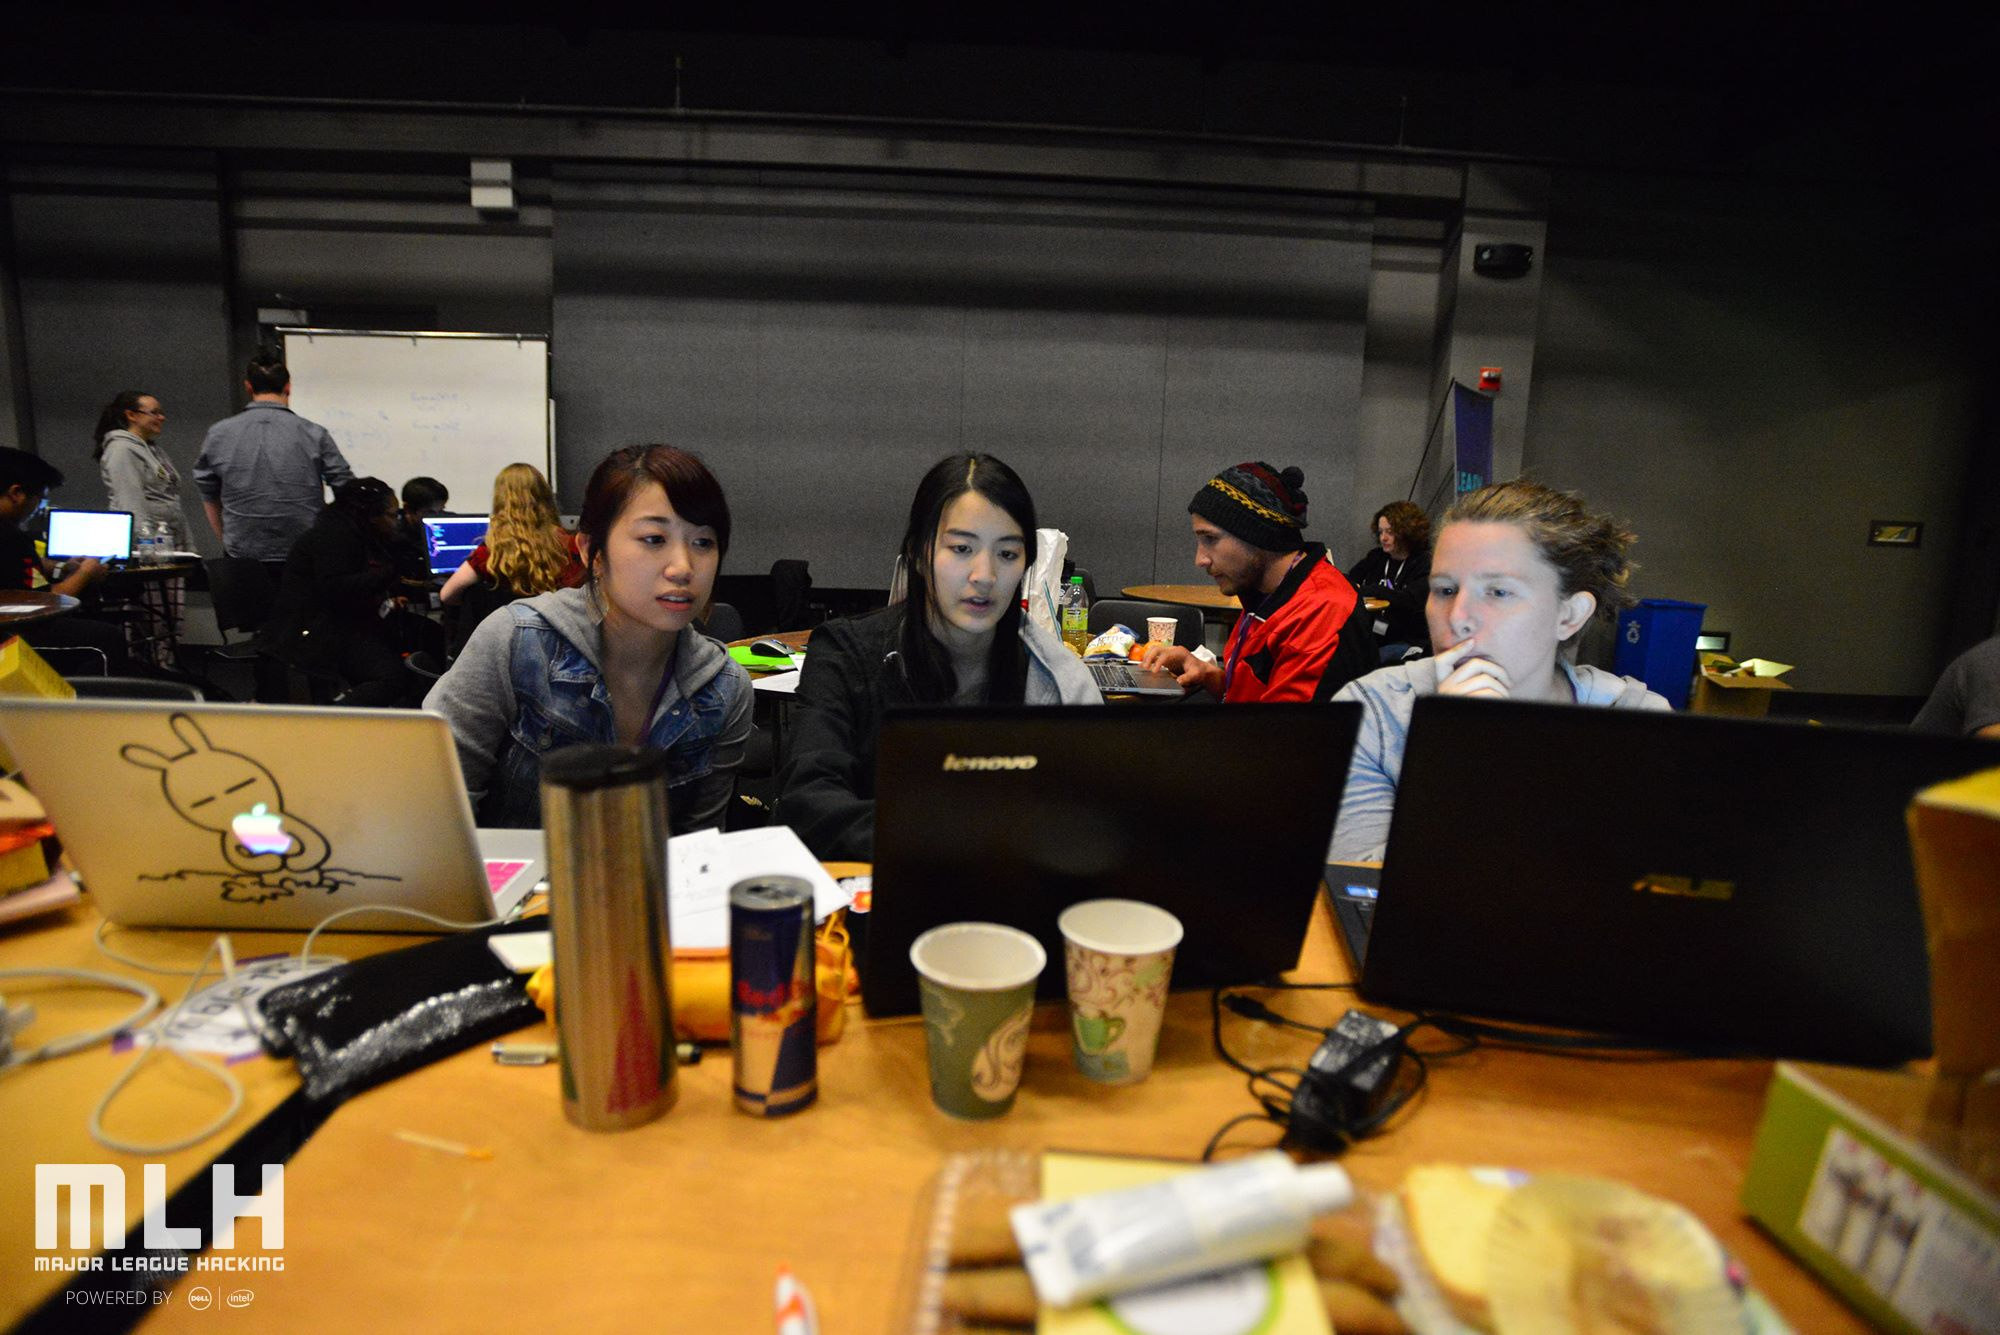 Photos of T9Hackers working.